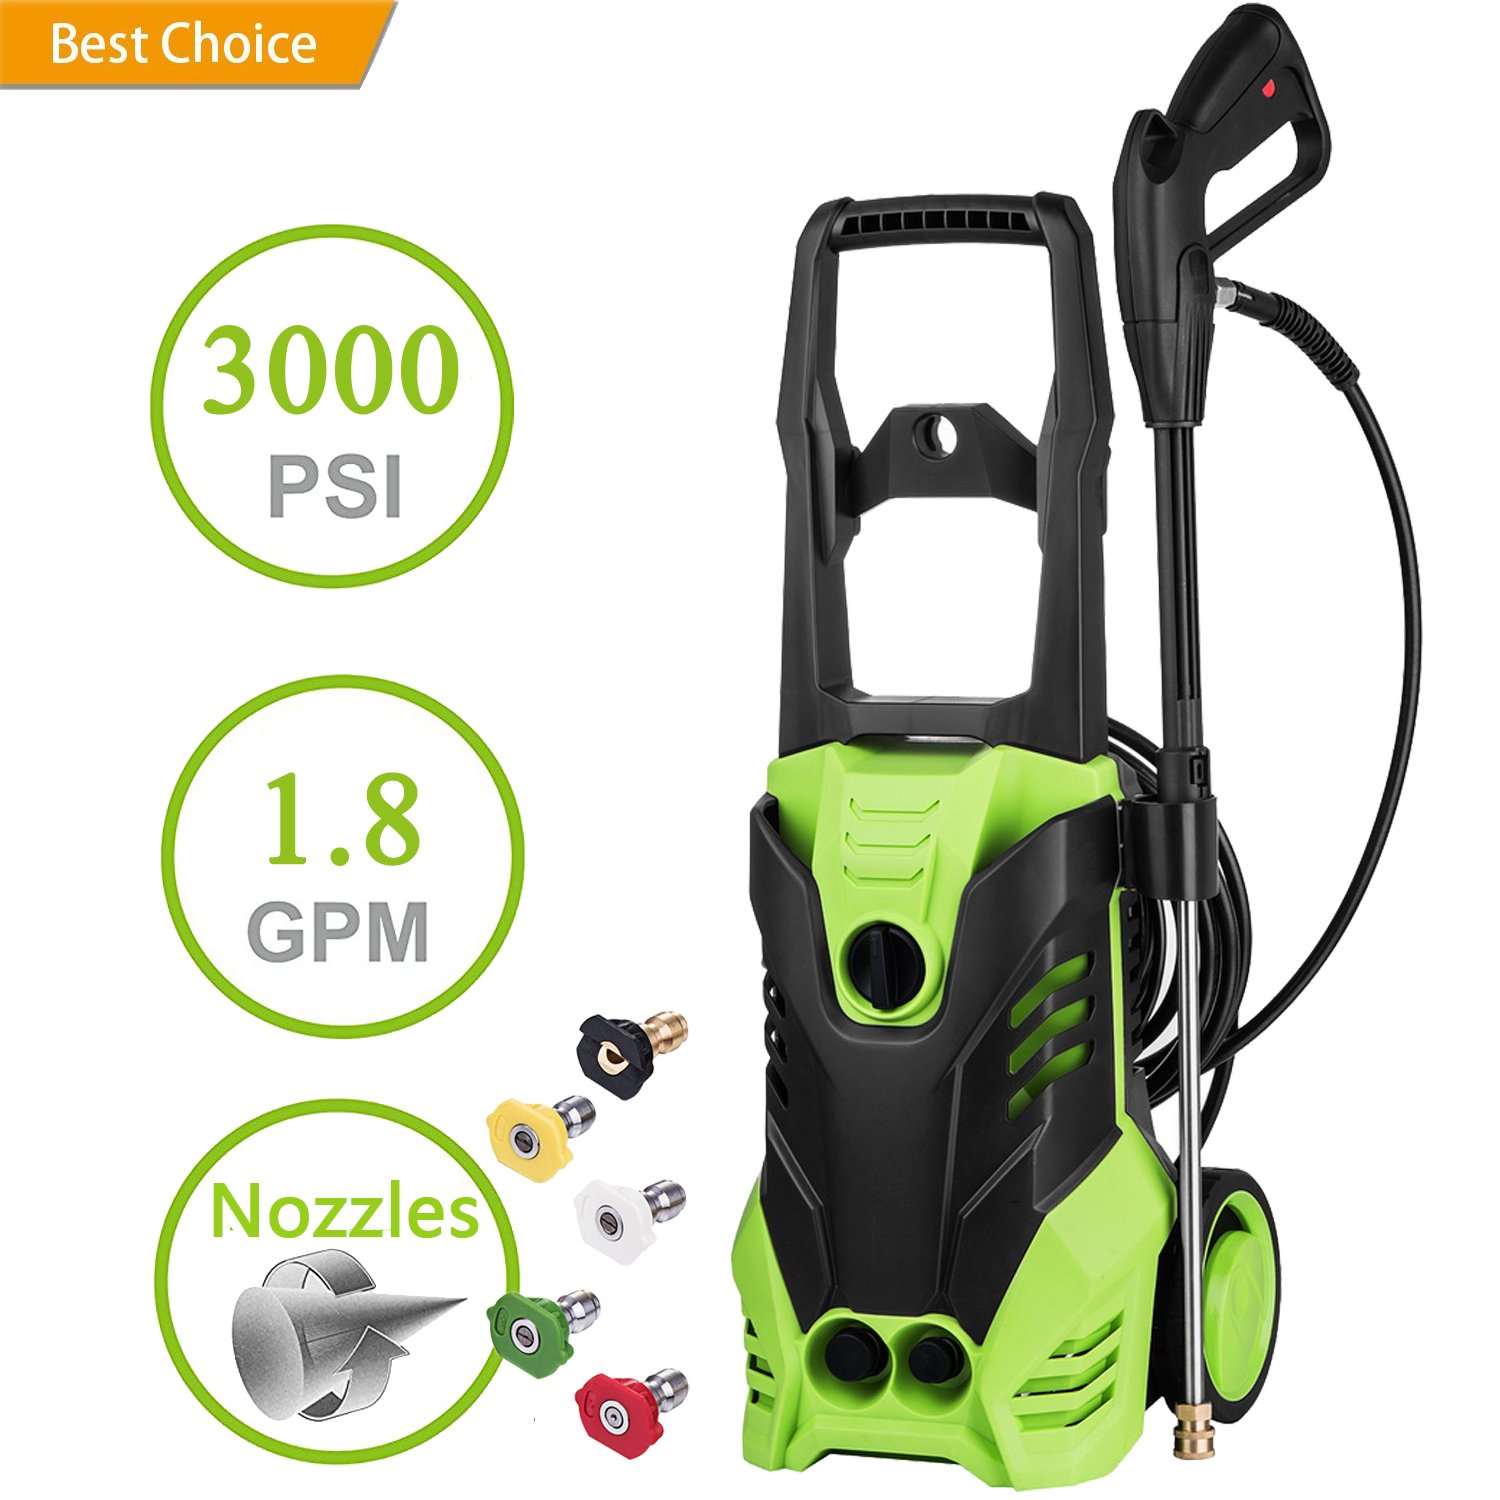 3000PSI Pressure 1.8 GPM 1800W High Pressure Washer Electric Pressure Washer by Oanon